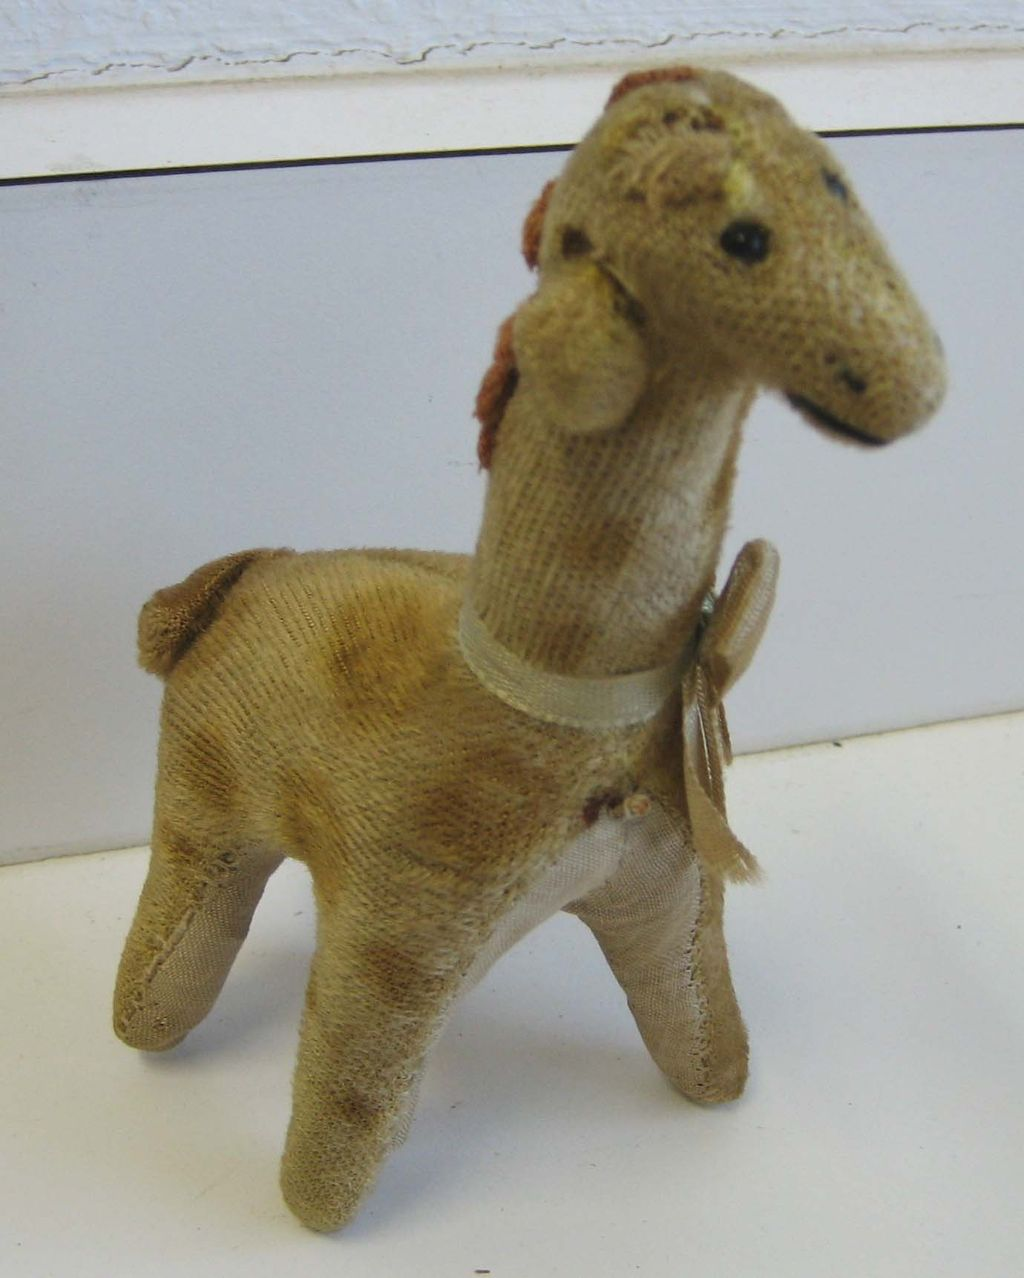 Antique toy animal Giraffe